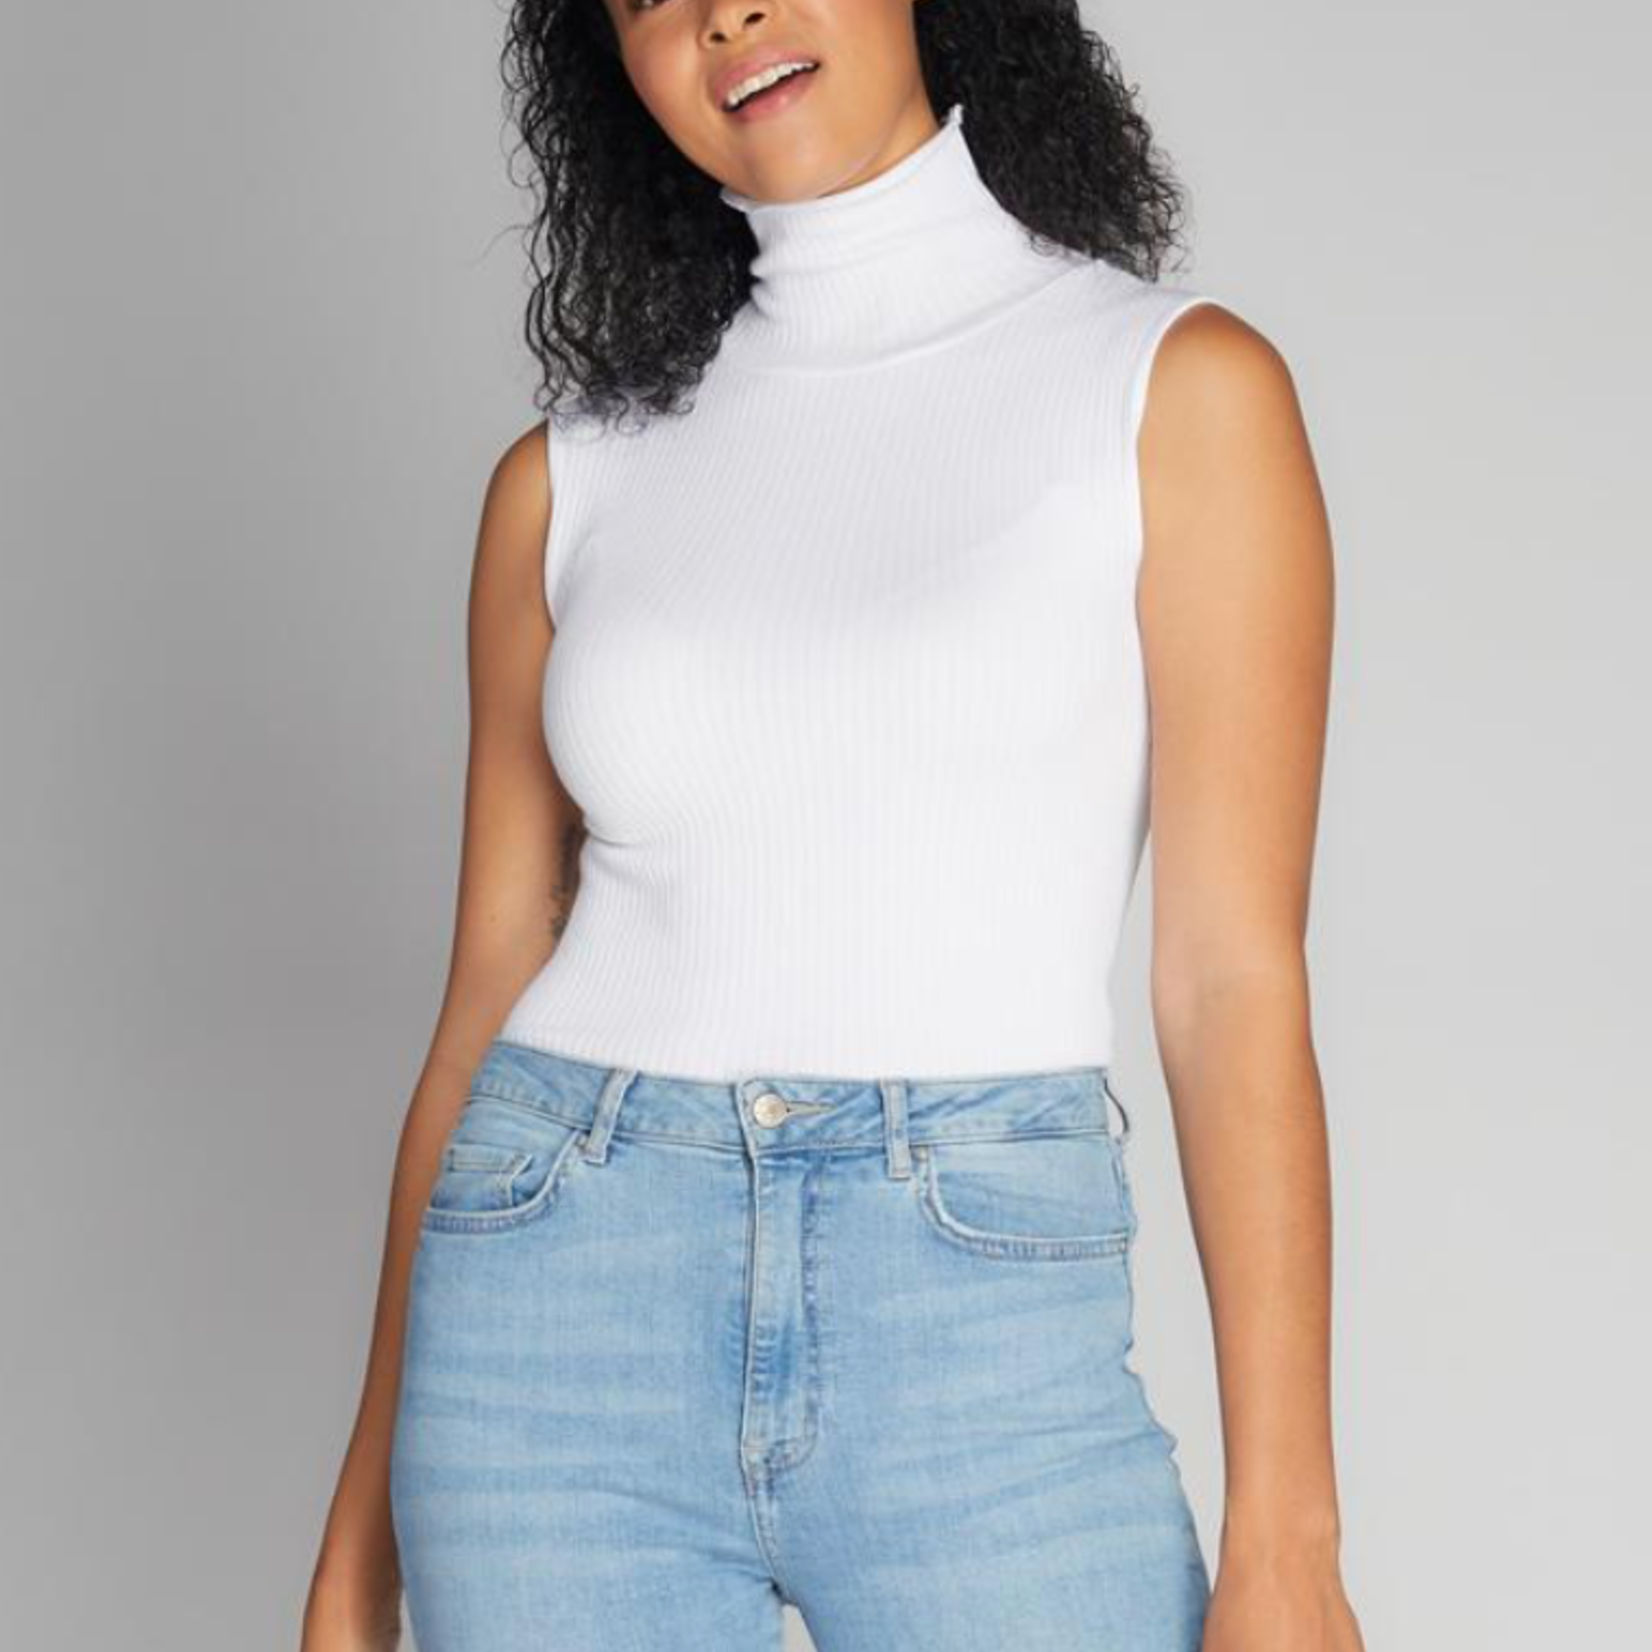 cest moi Seamless Rib S/Less TN Top- One Size